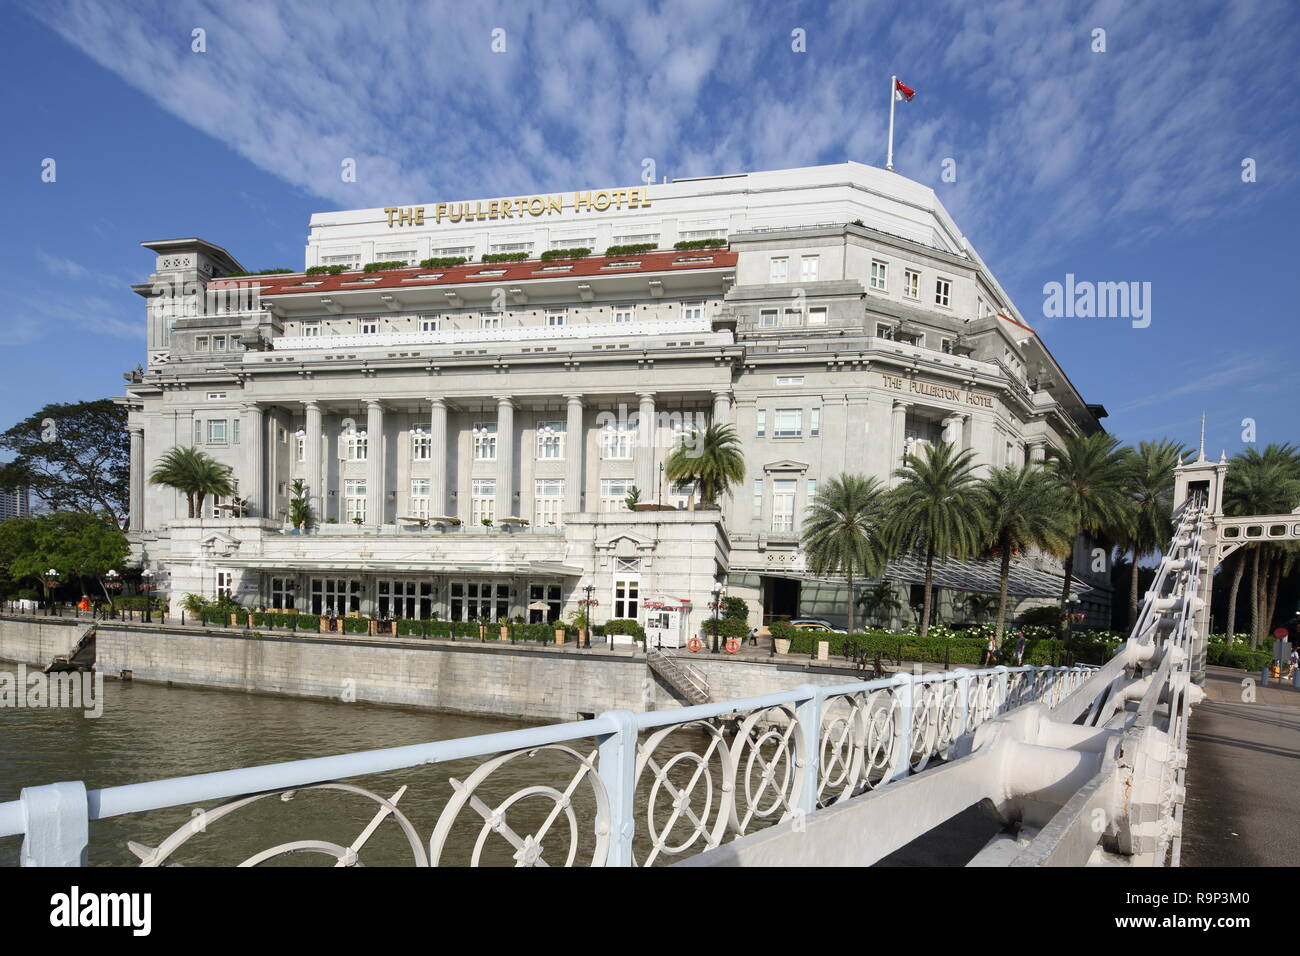 Cavenagh Bridge near to Fullerton Hotel. This is a 5-stars neoclassical hotel located beside the Singapore River, Singapore. - Stock Image